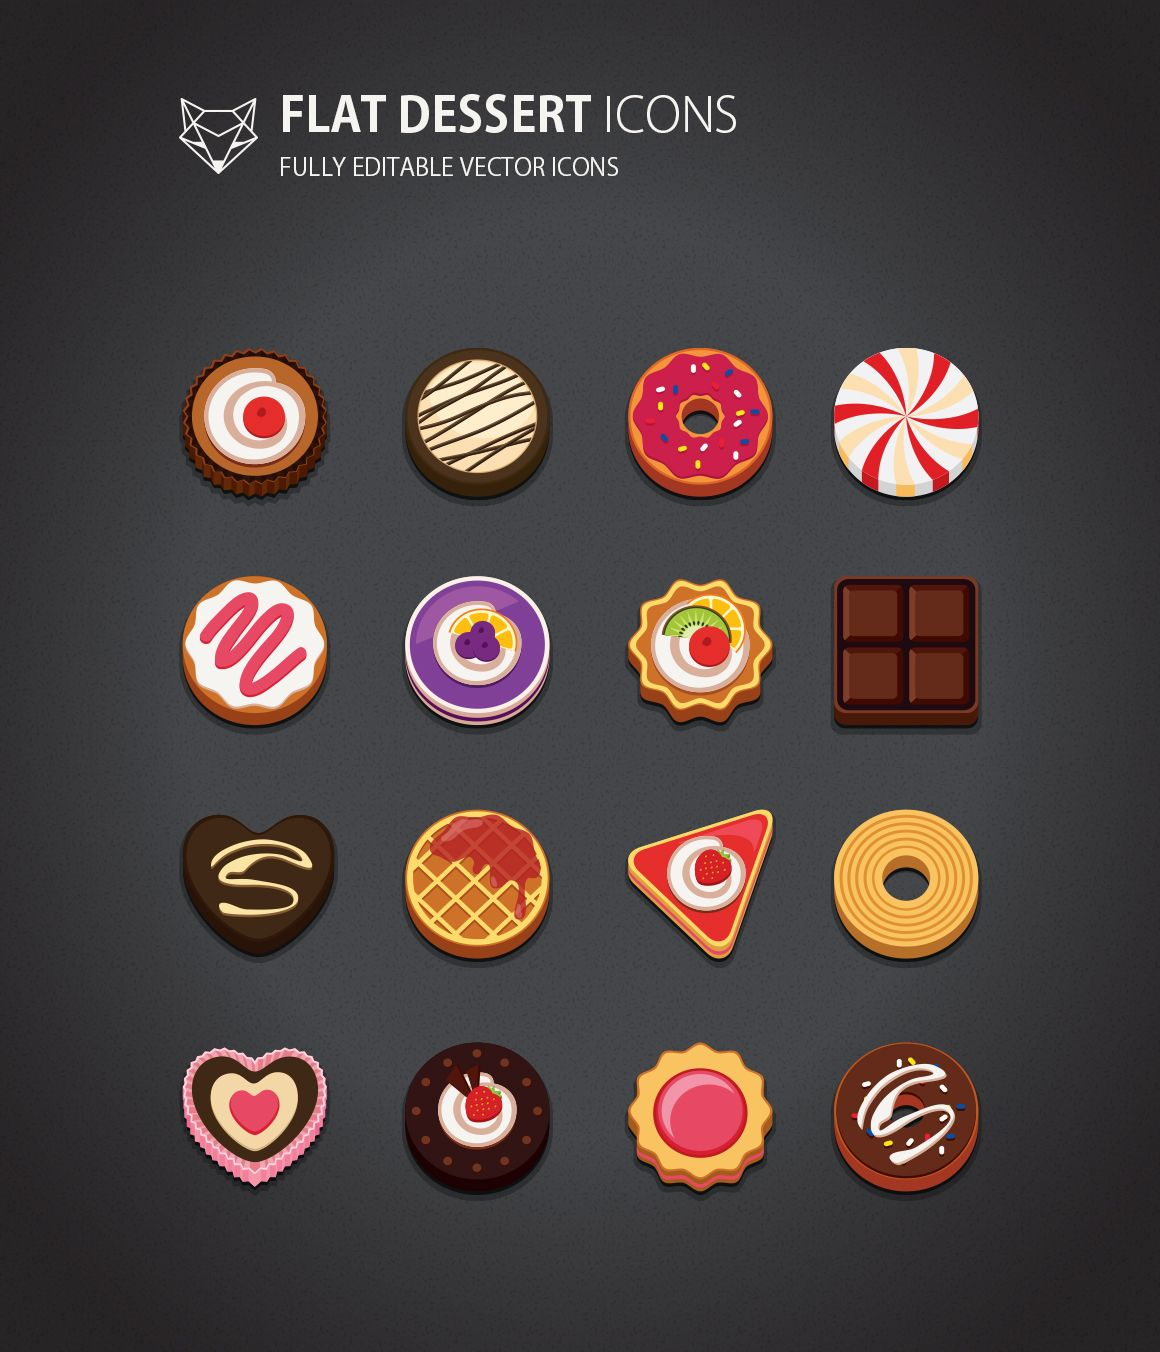 This is flat style Dessert Icons Set. it is cute and